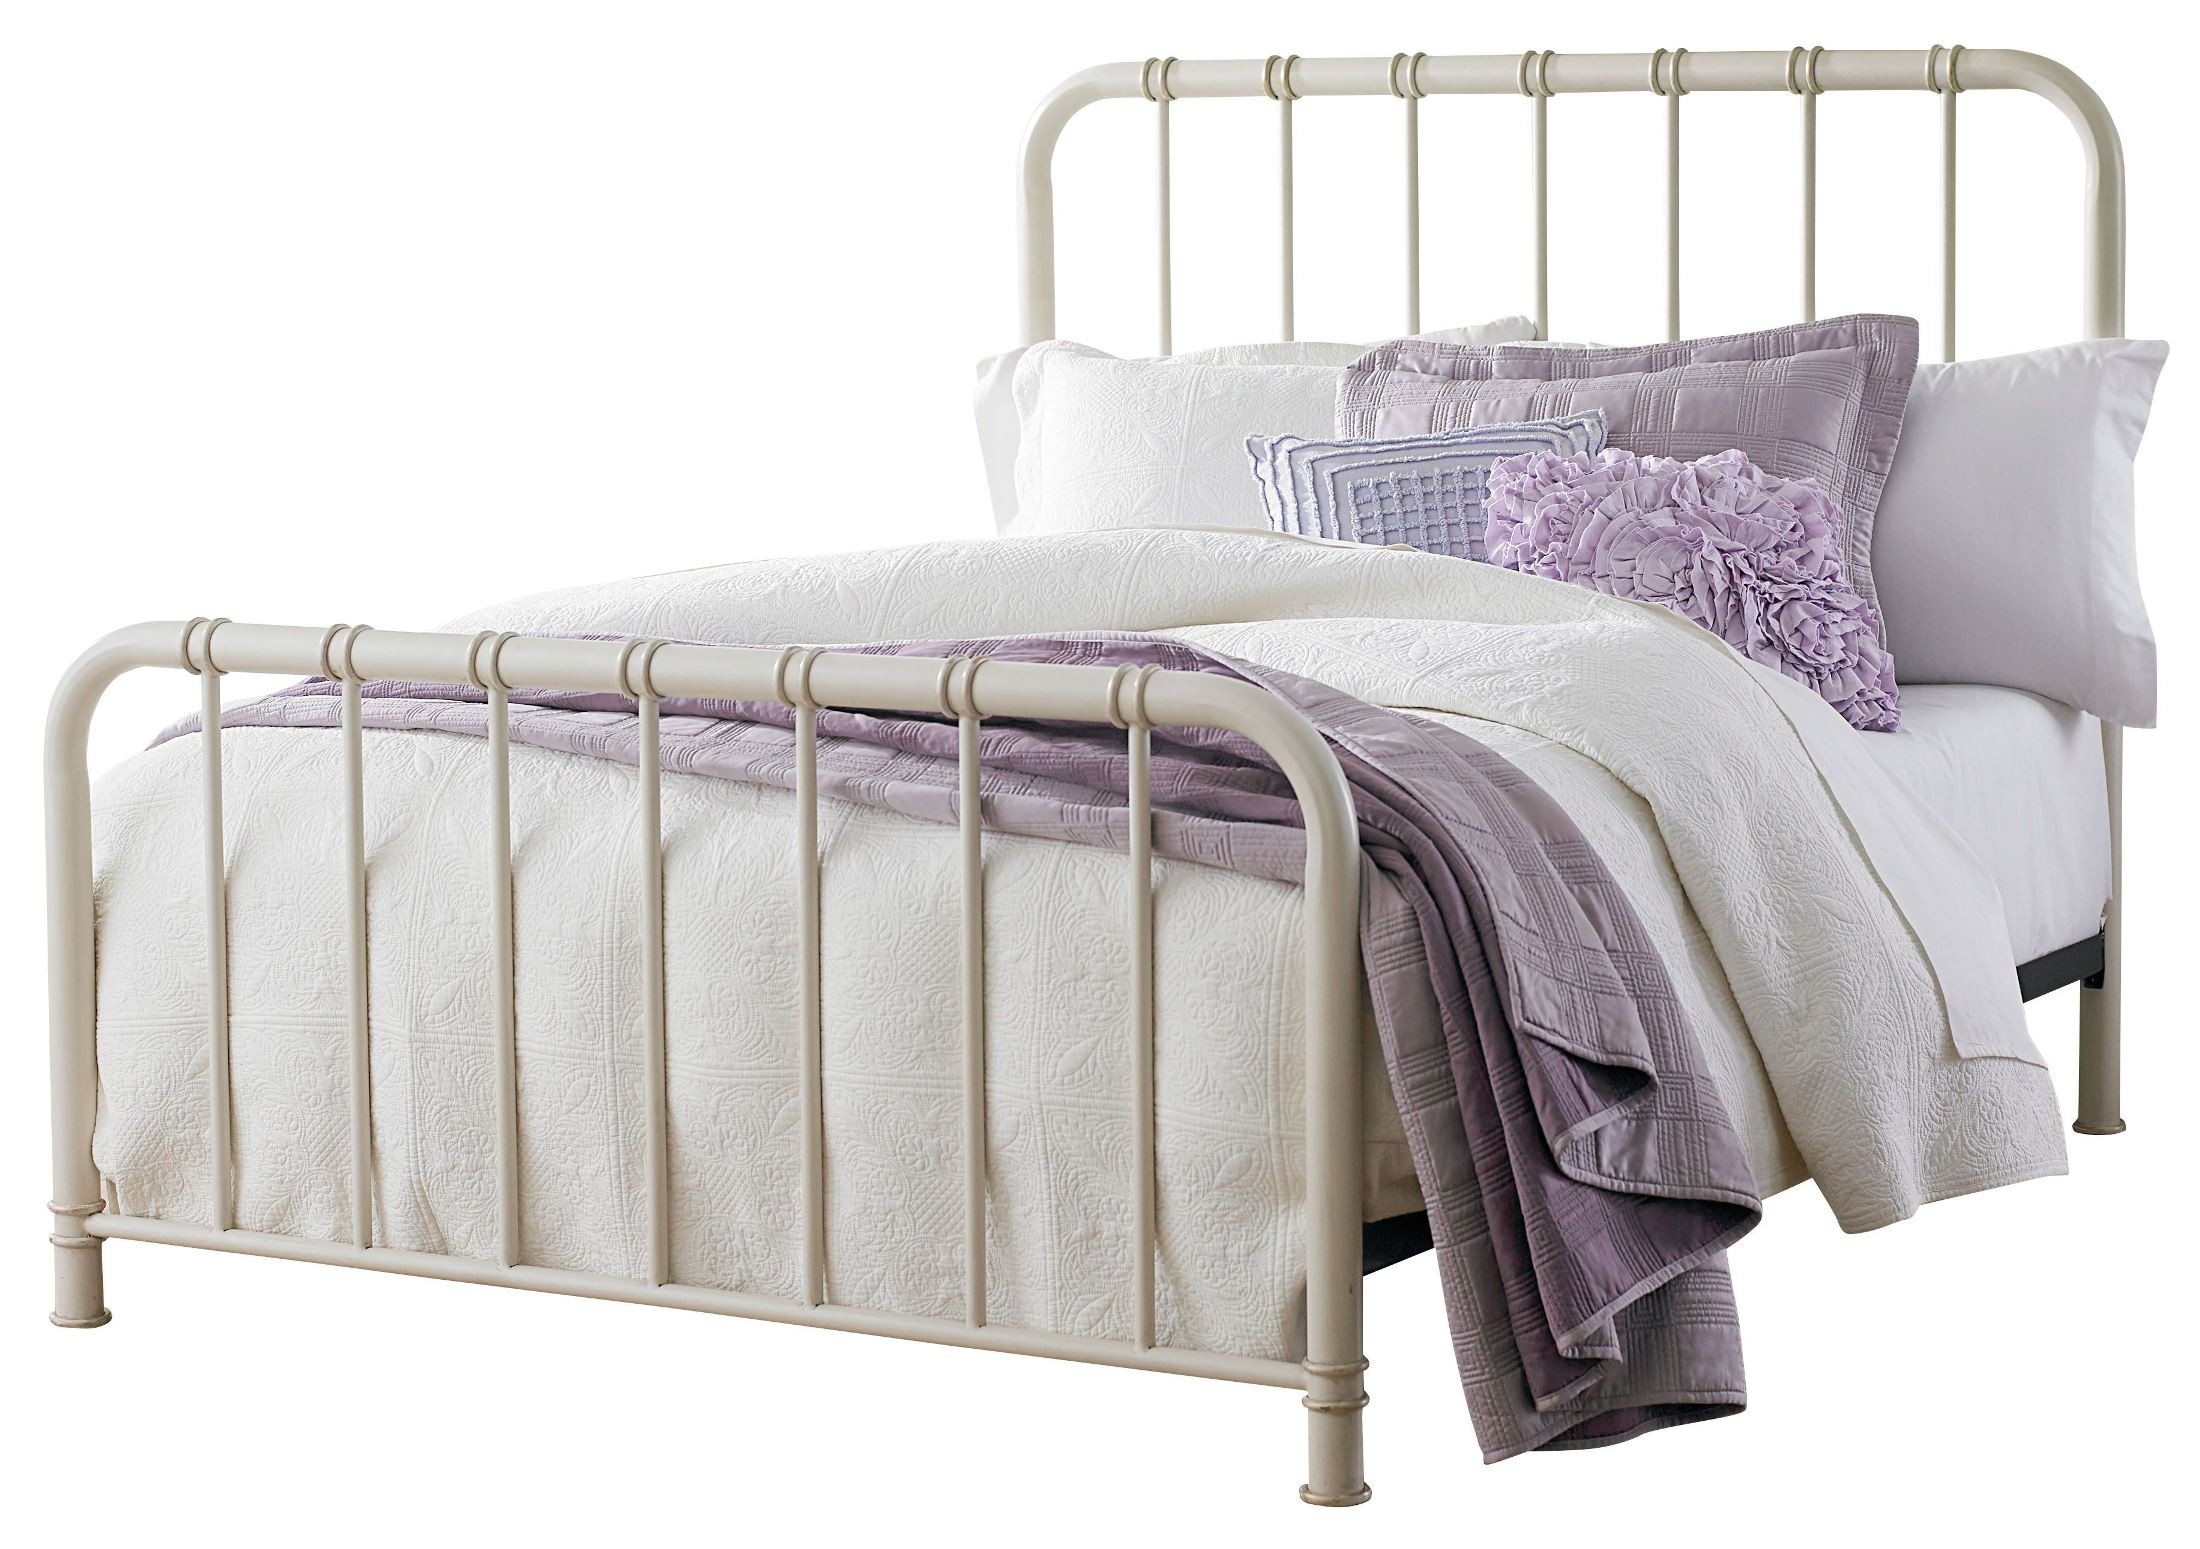 White Metal Bed Queen: Tristen White Queen Metal Bed From Standard Furniture